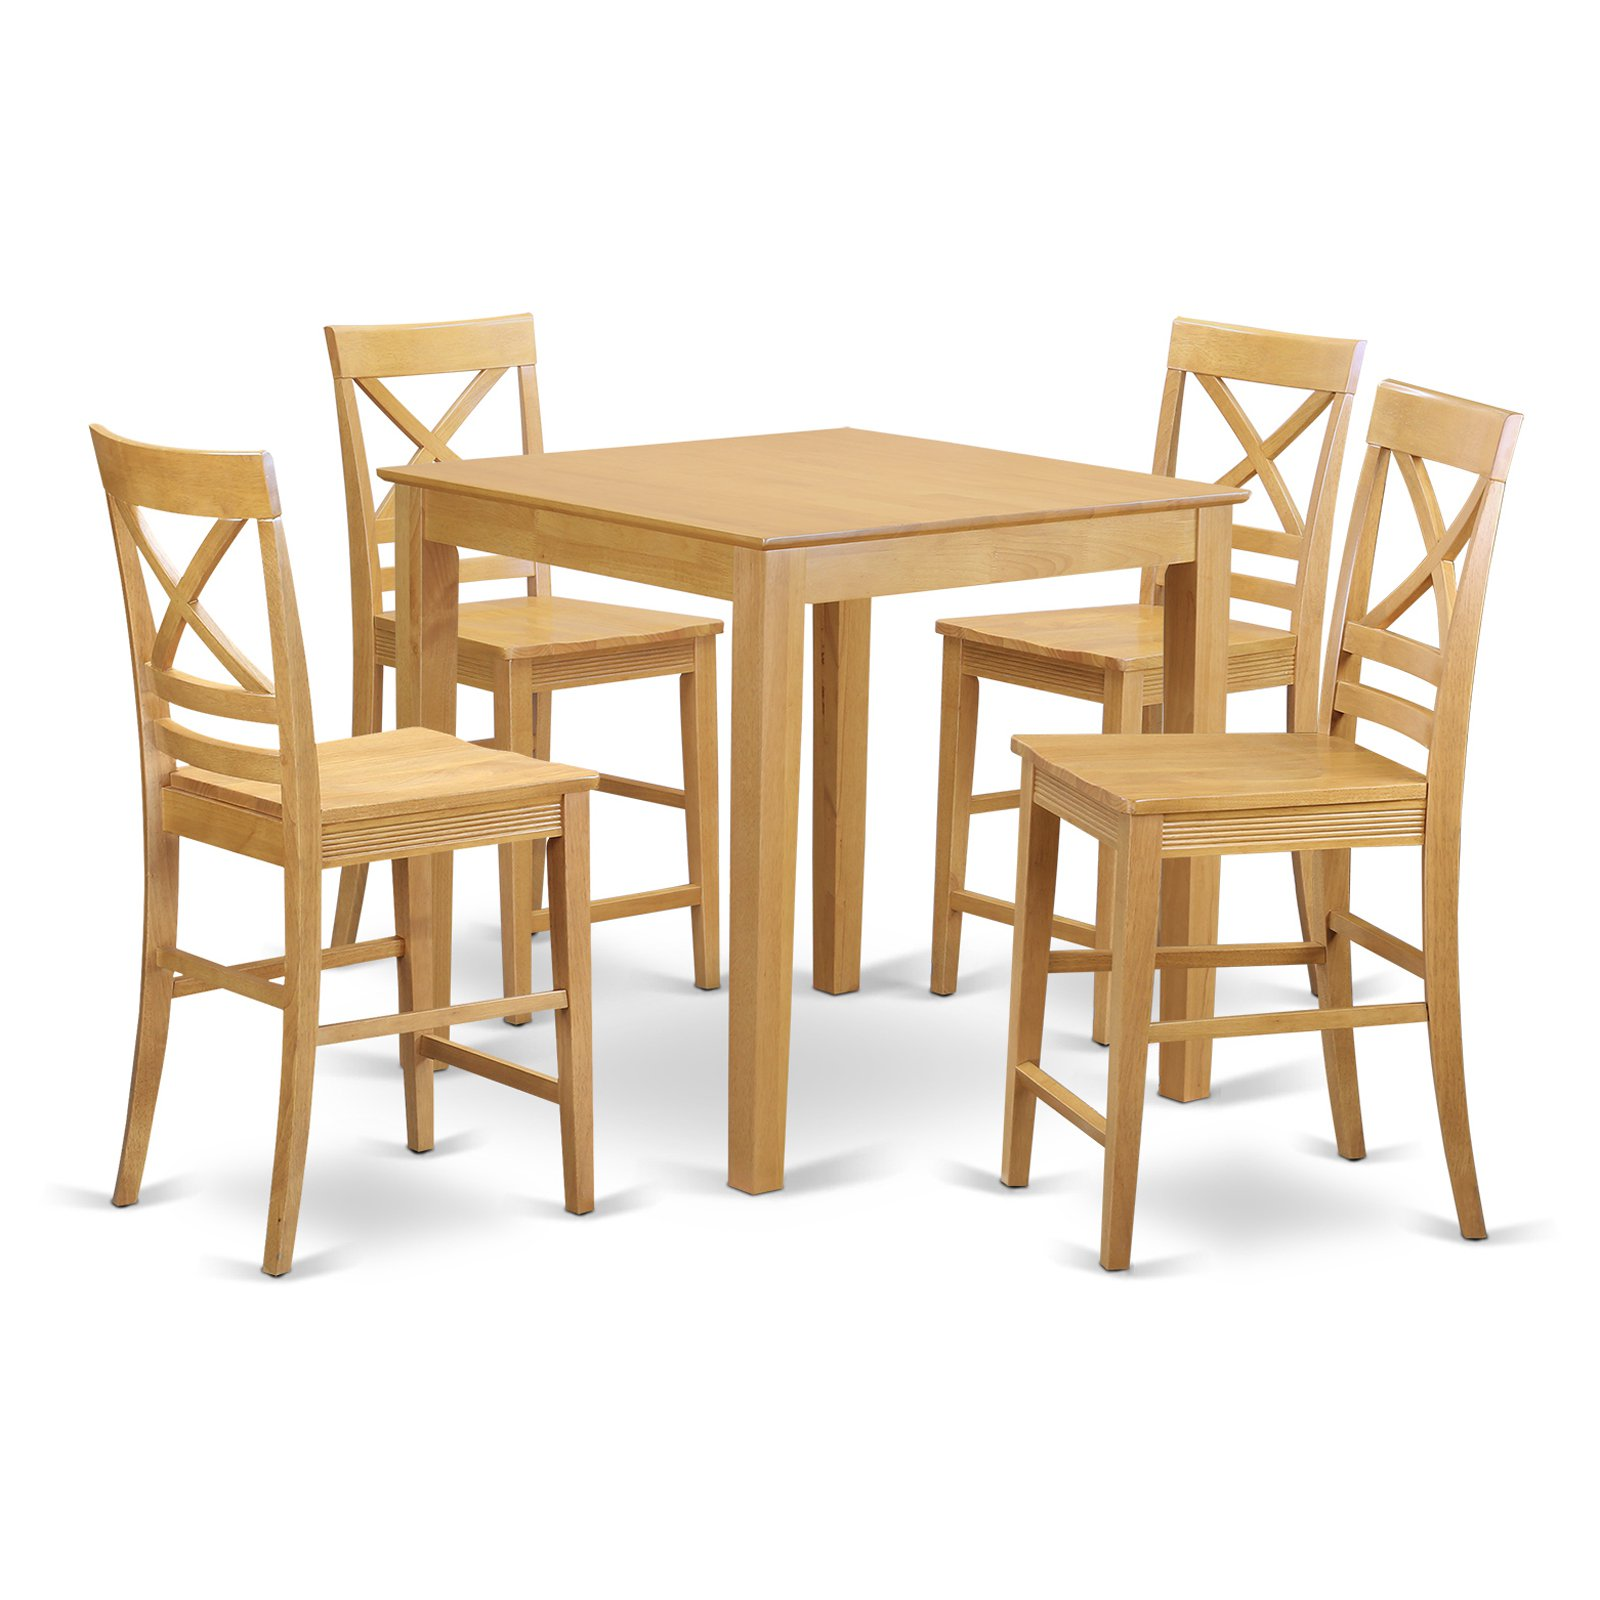 East West Furniture Pub 5 Piece Cross-And-Ladder Dining Table Set